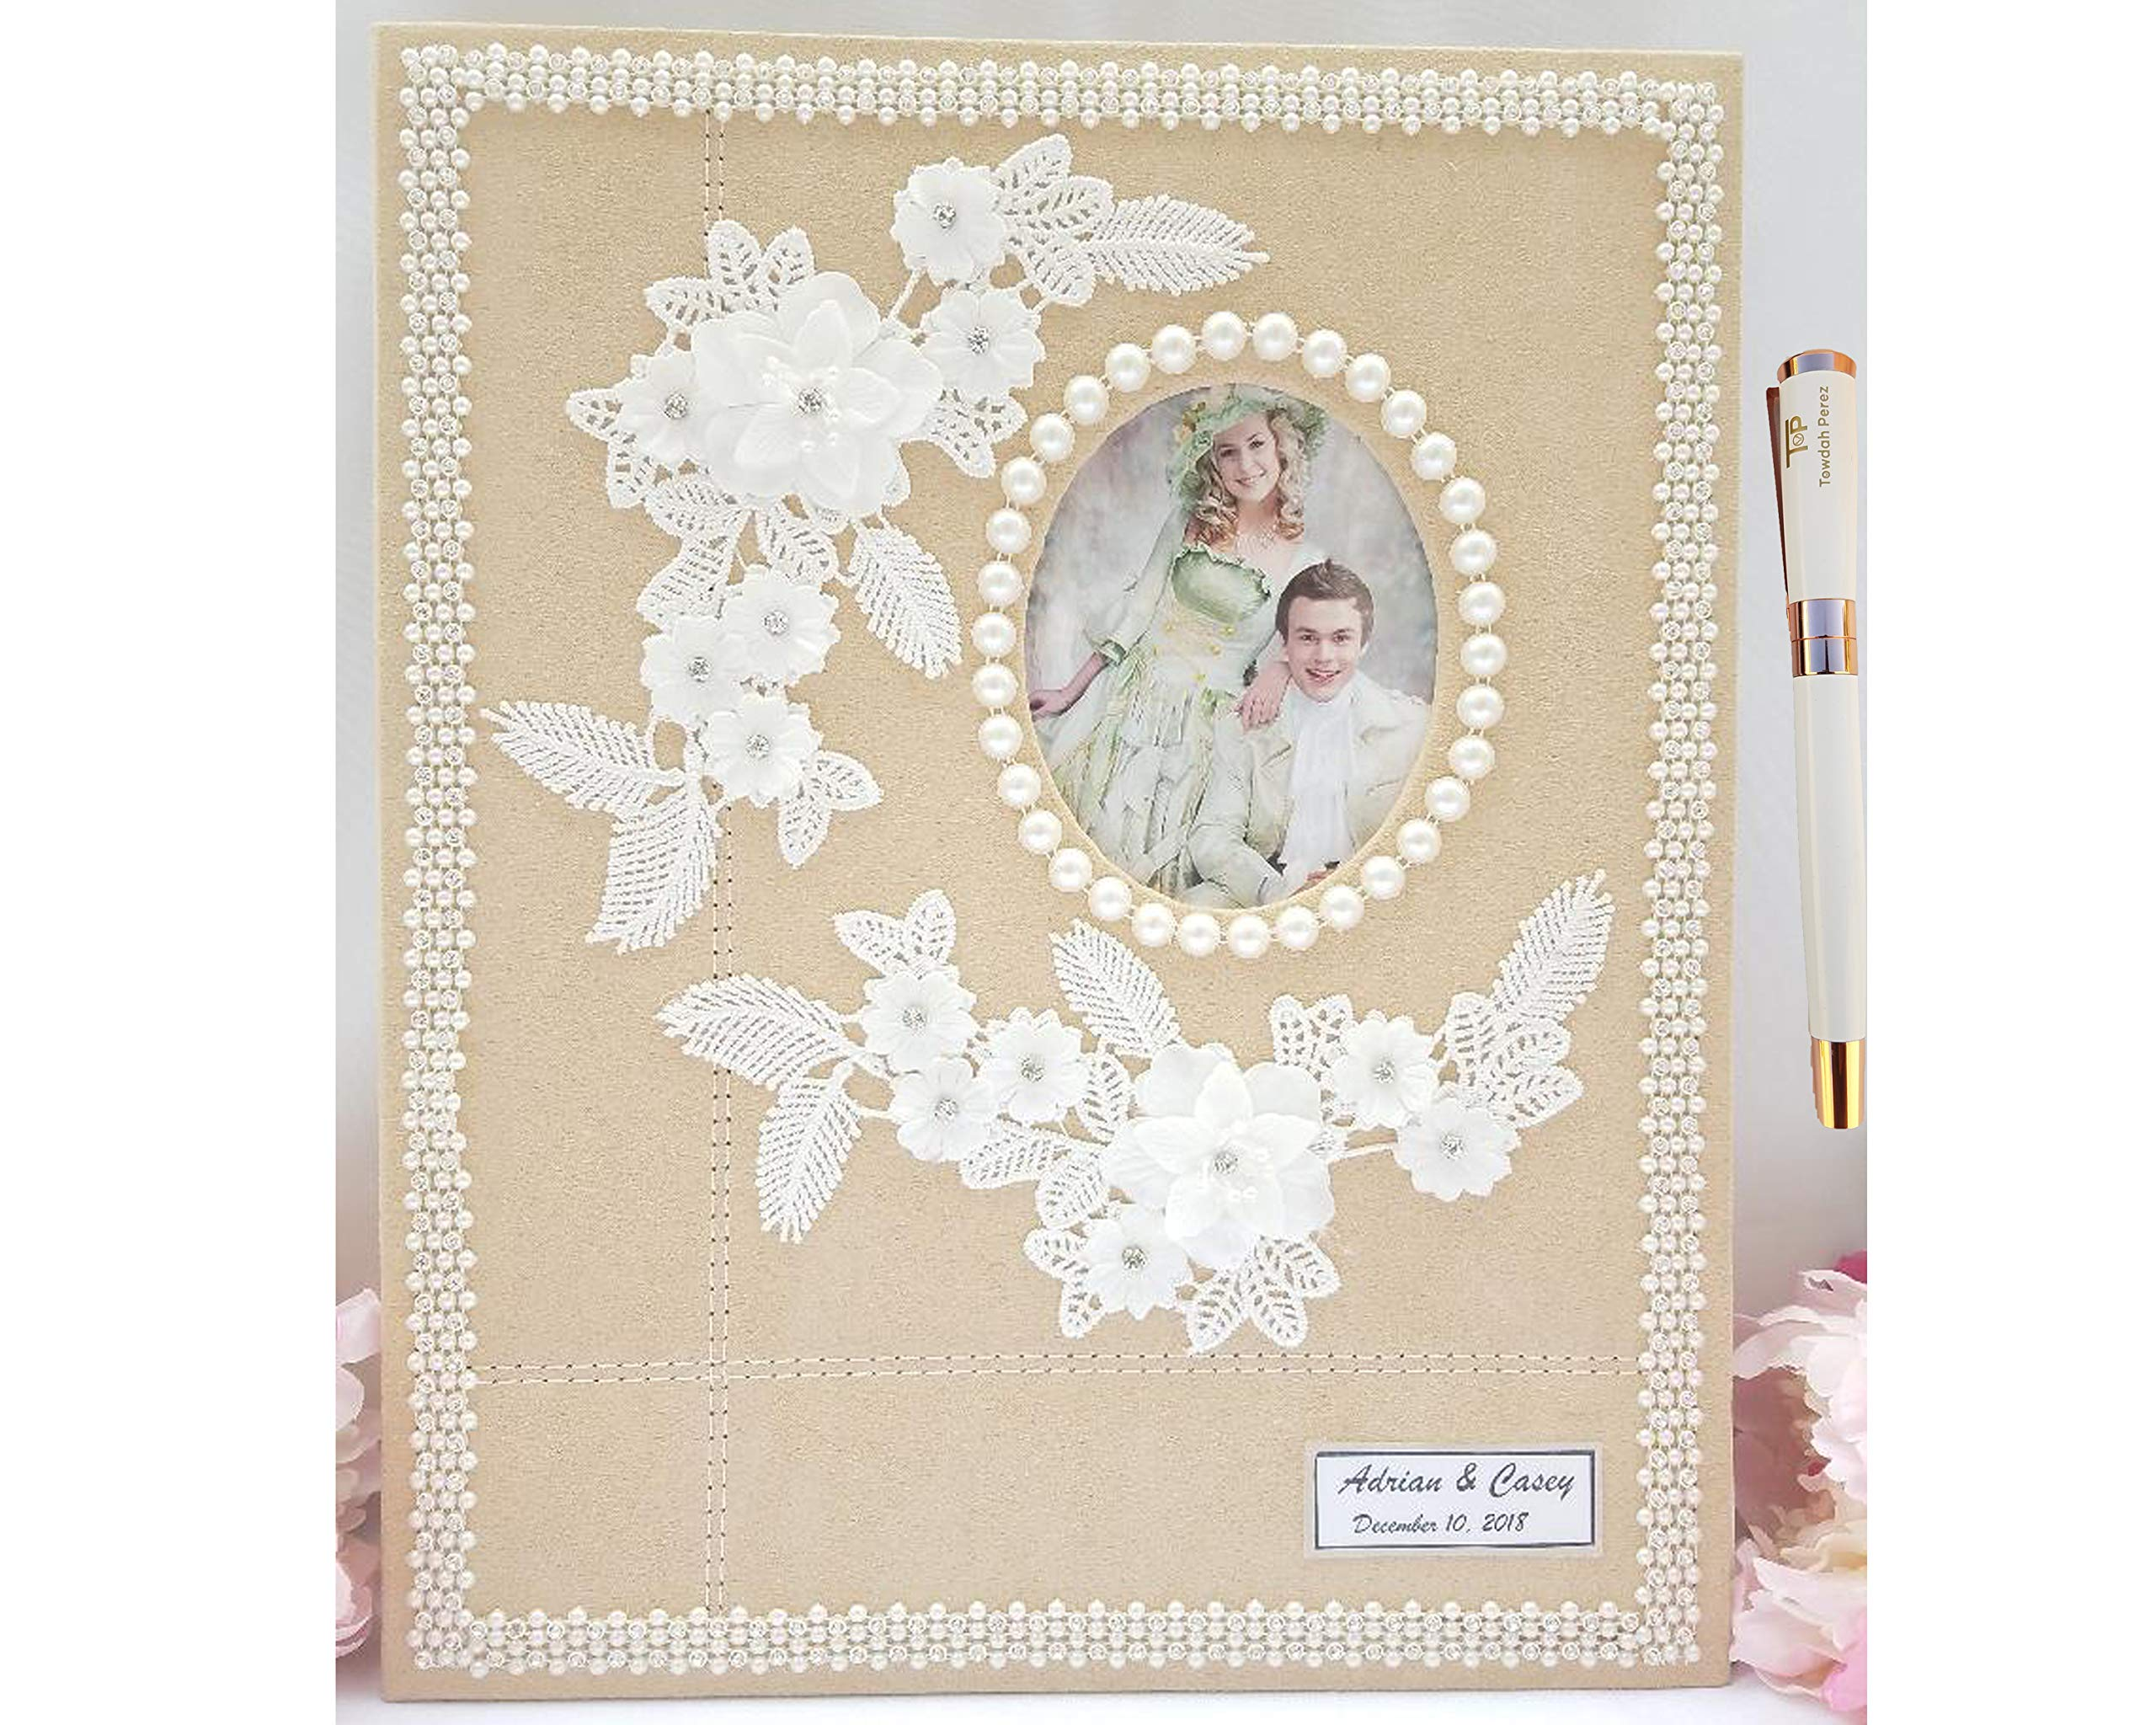 Towdah Perez Pearls Flower lace self Stick Wedding Album 40 Pages. Hand-Decorated Fabric Cover Album for 4x6, 5x7, 8x10, 8x12 Photos with Gift Box, Luxury White/Gold Pen. Customizable, personalizable